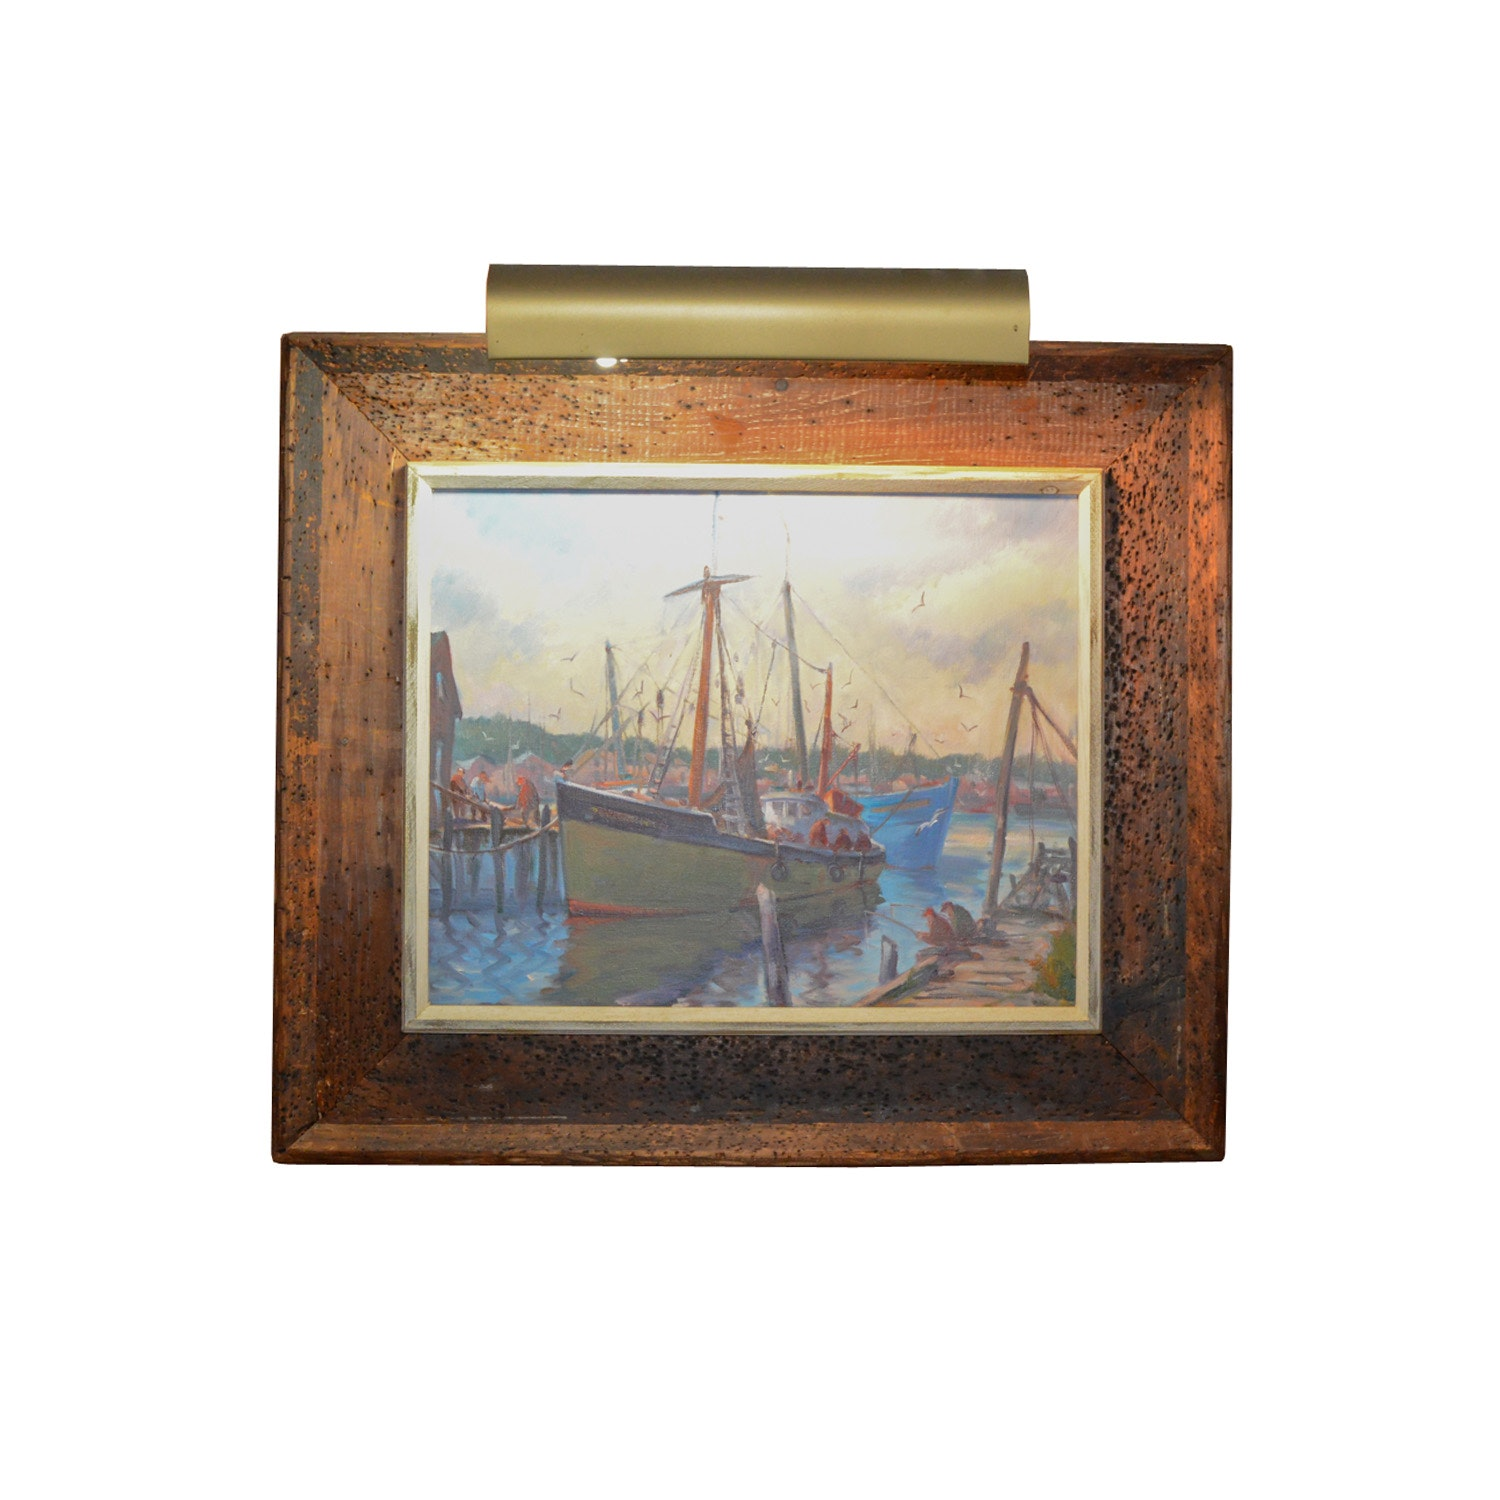 James B. Knowlton Oil Painting on Canvas